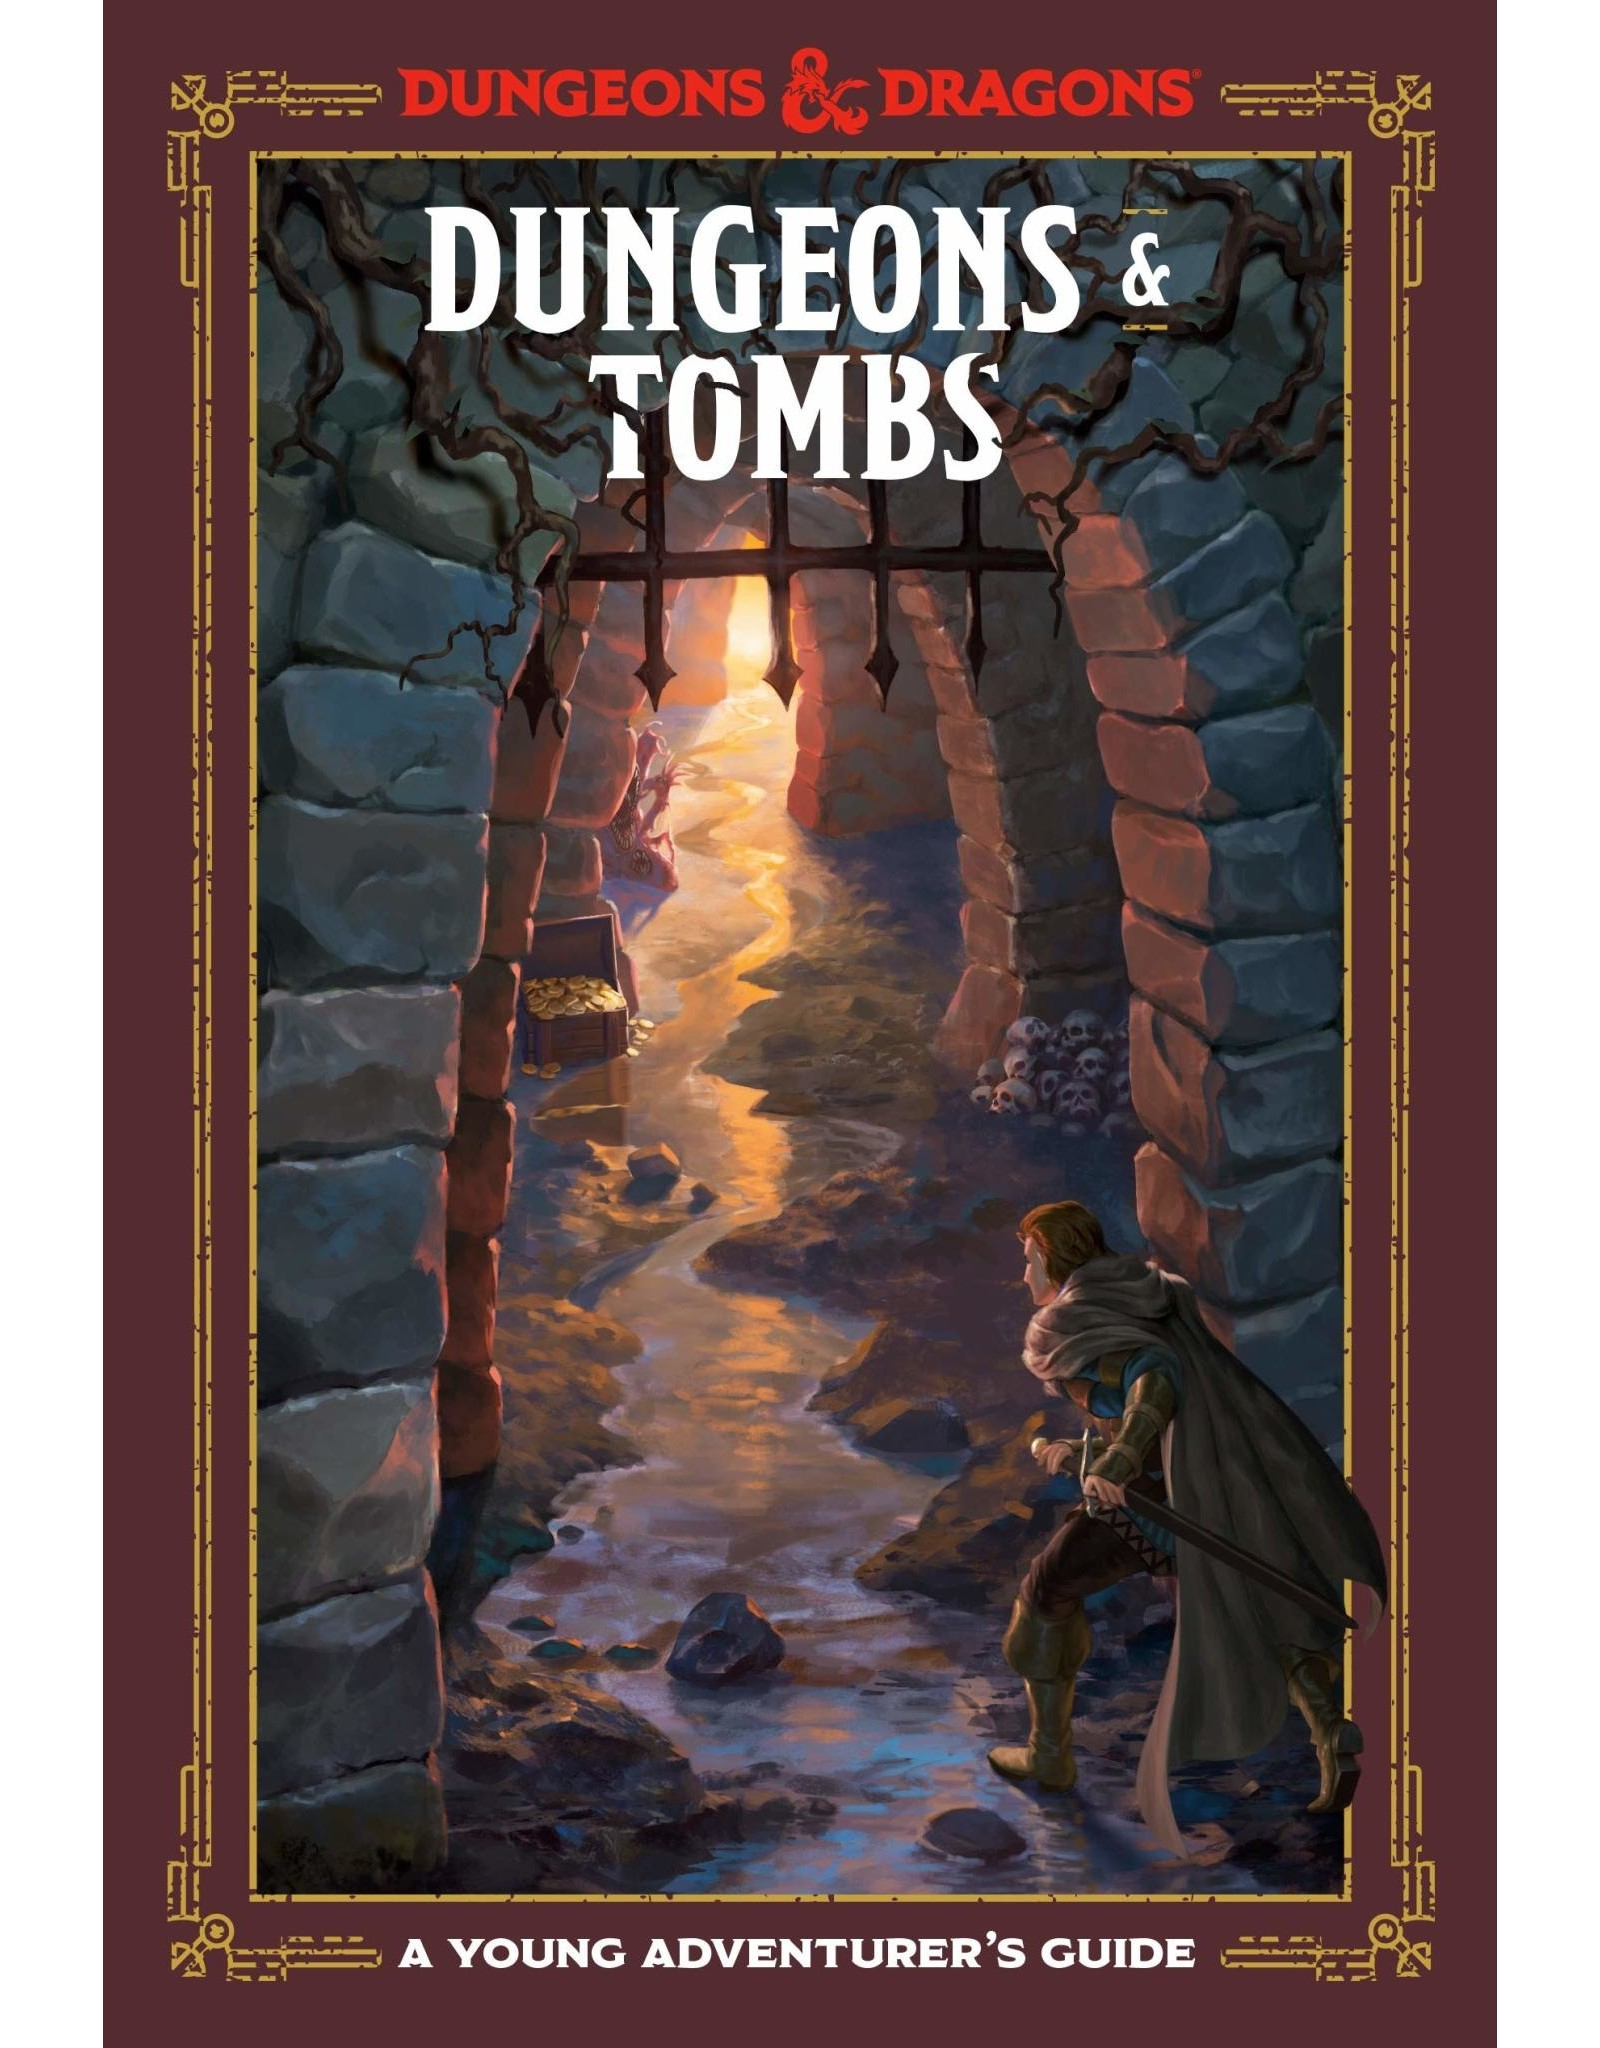 Dungeons & Dragons RPG: Dungeons and Tombs